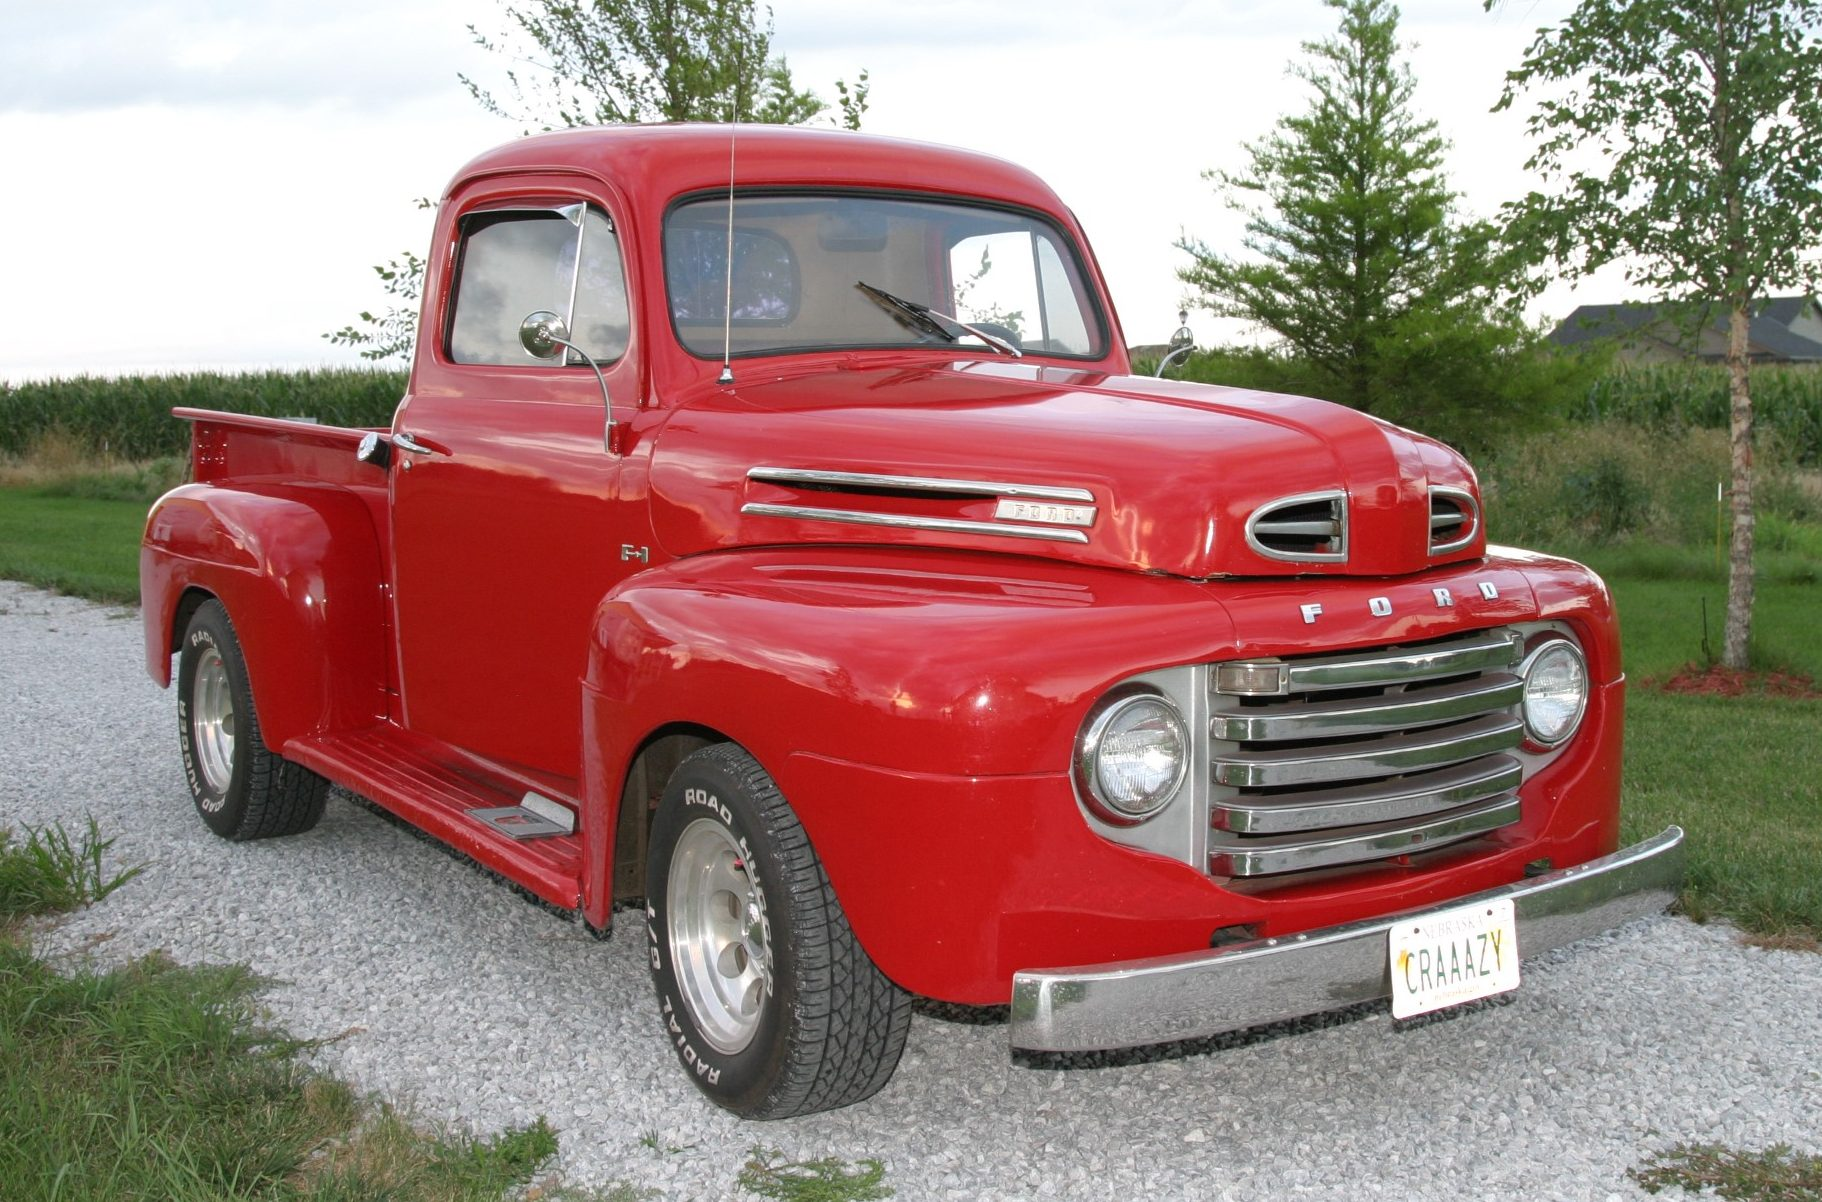 hight resolution of 1949 ford f1 pickup for sale on bat auctions sold for 10 200 on august 22 2016 lot 1 947 bring a trailer